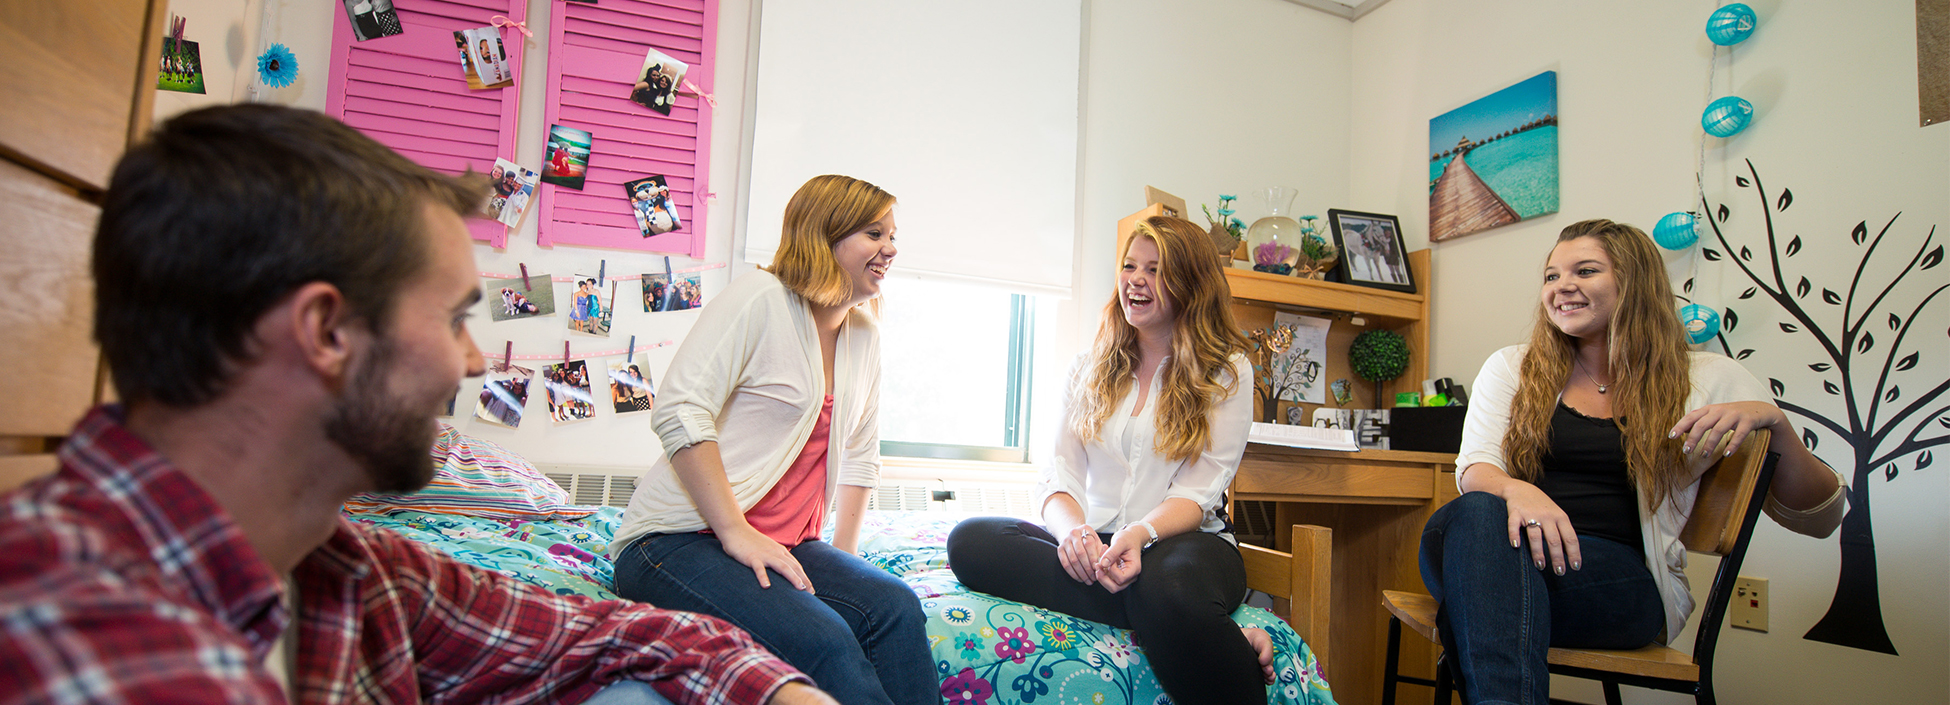 Students laugh and visit in one of the dormitories at the Randolph Center Campus